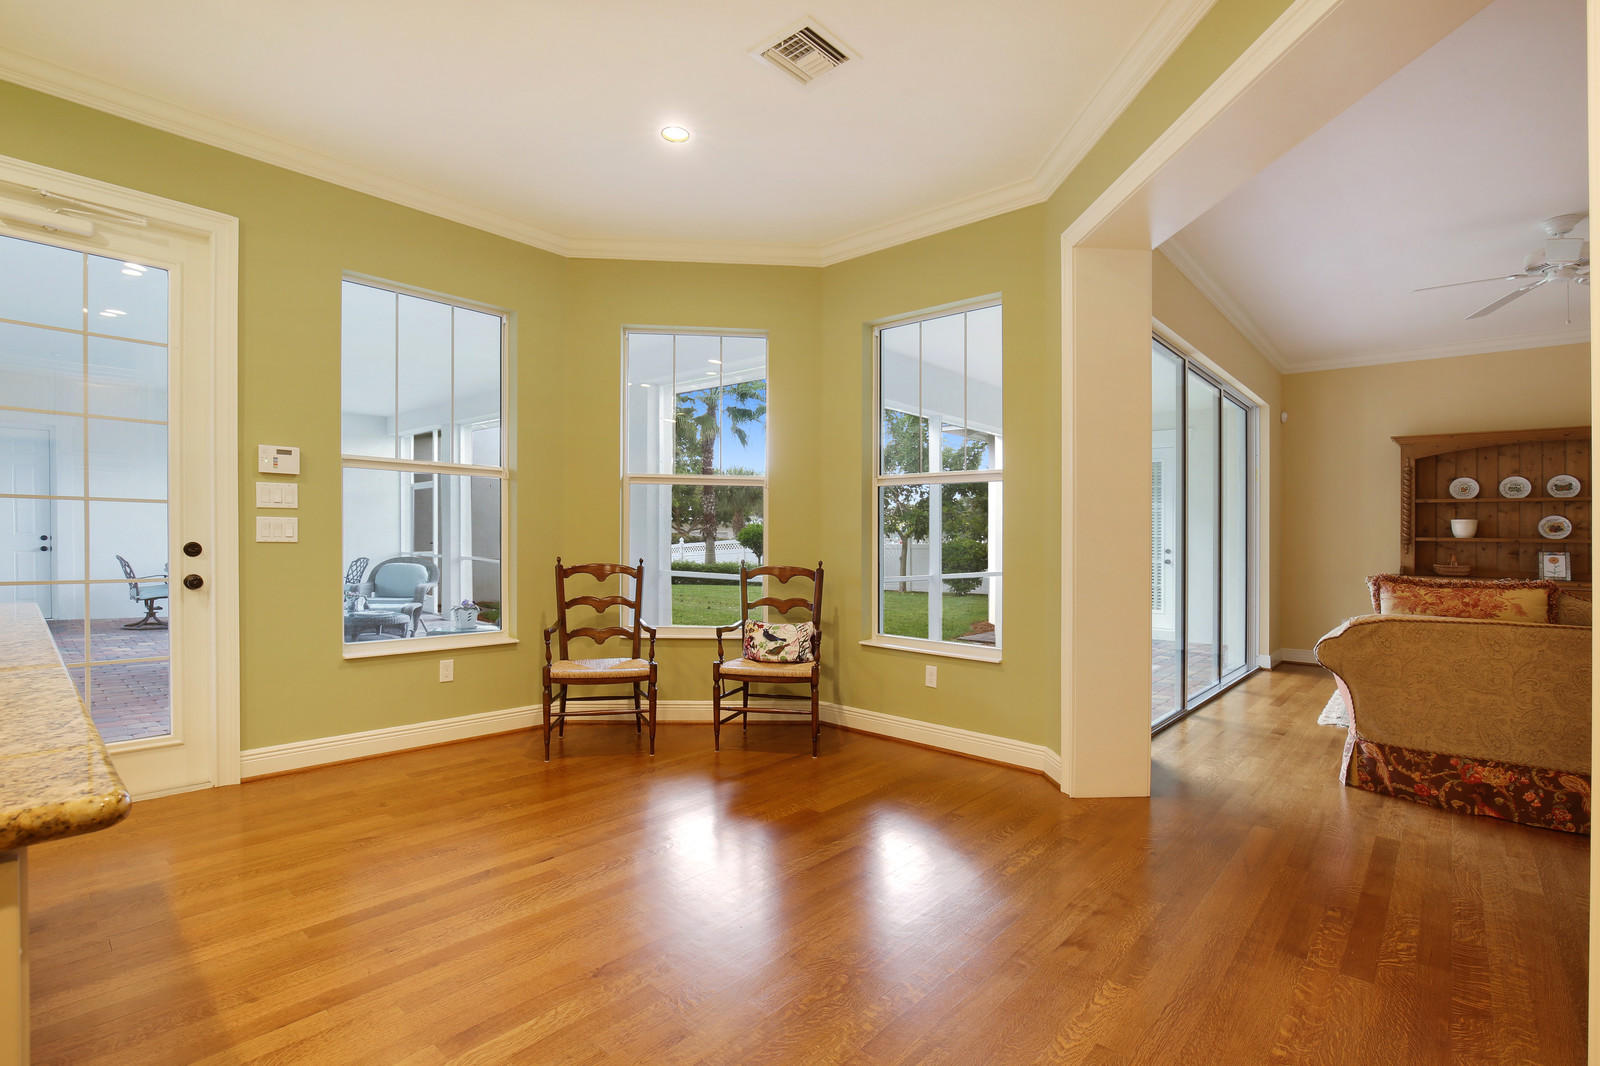 1159 Frederick Small Road, Jupiter, Florida 33458, 6 Bedrooms Bedrooms, ,4.1 BathroomsBathrooms,A,Single family,Frederick Small,RX-10476722